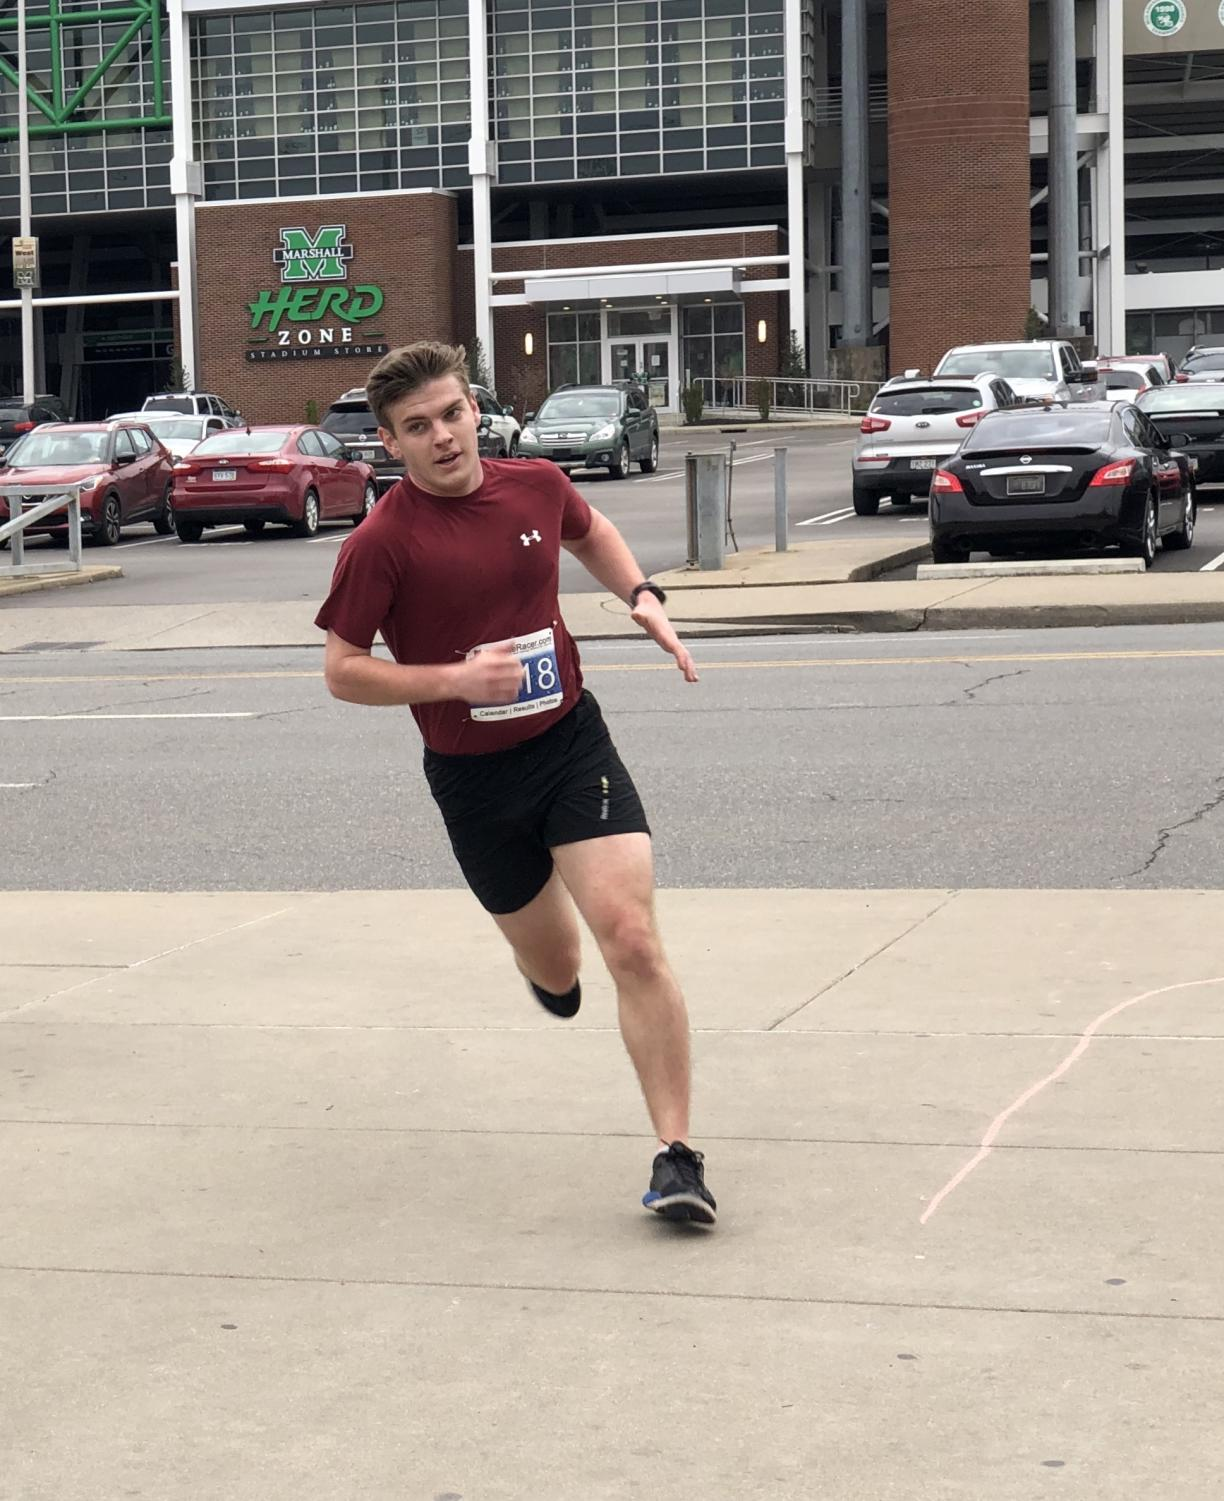 Jeremiah Parlock, a junior political science major and member of the Student Government Association, rounds the last bend of the We Will Run For You 5K route. Parlock was the second runner to finish the race.